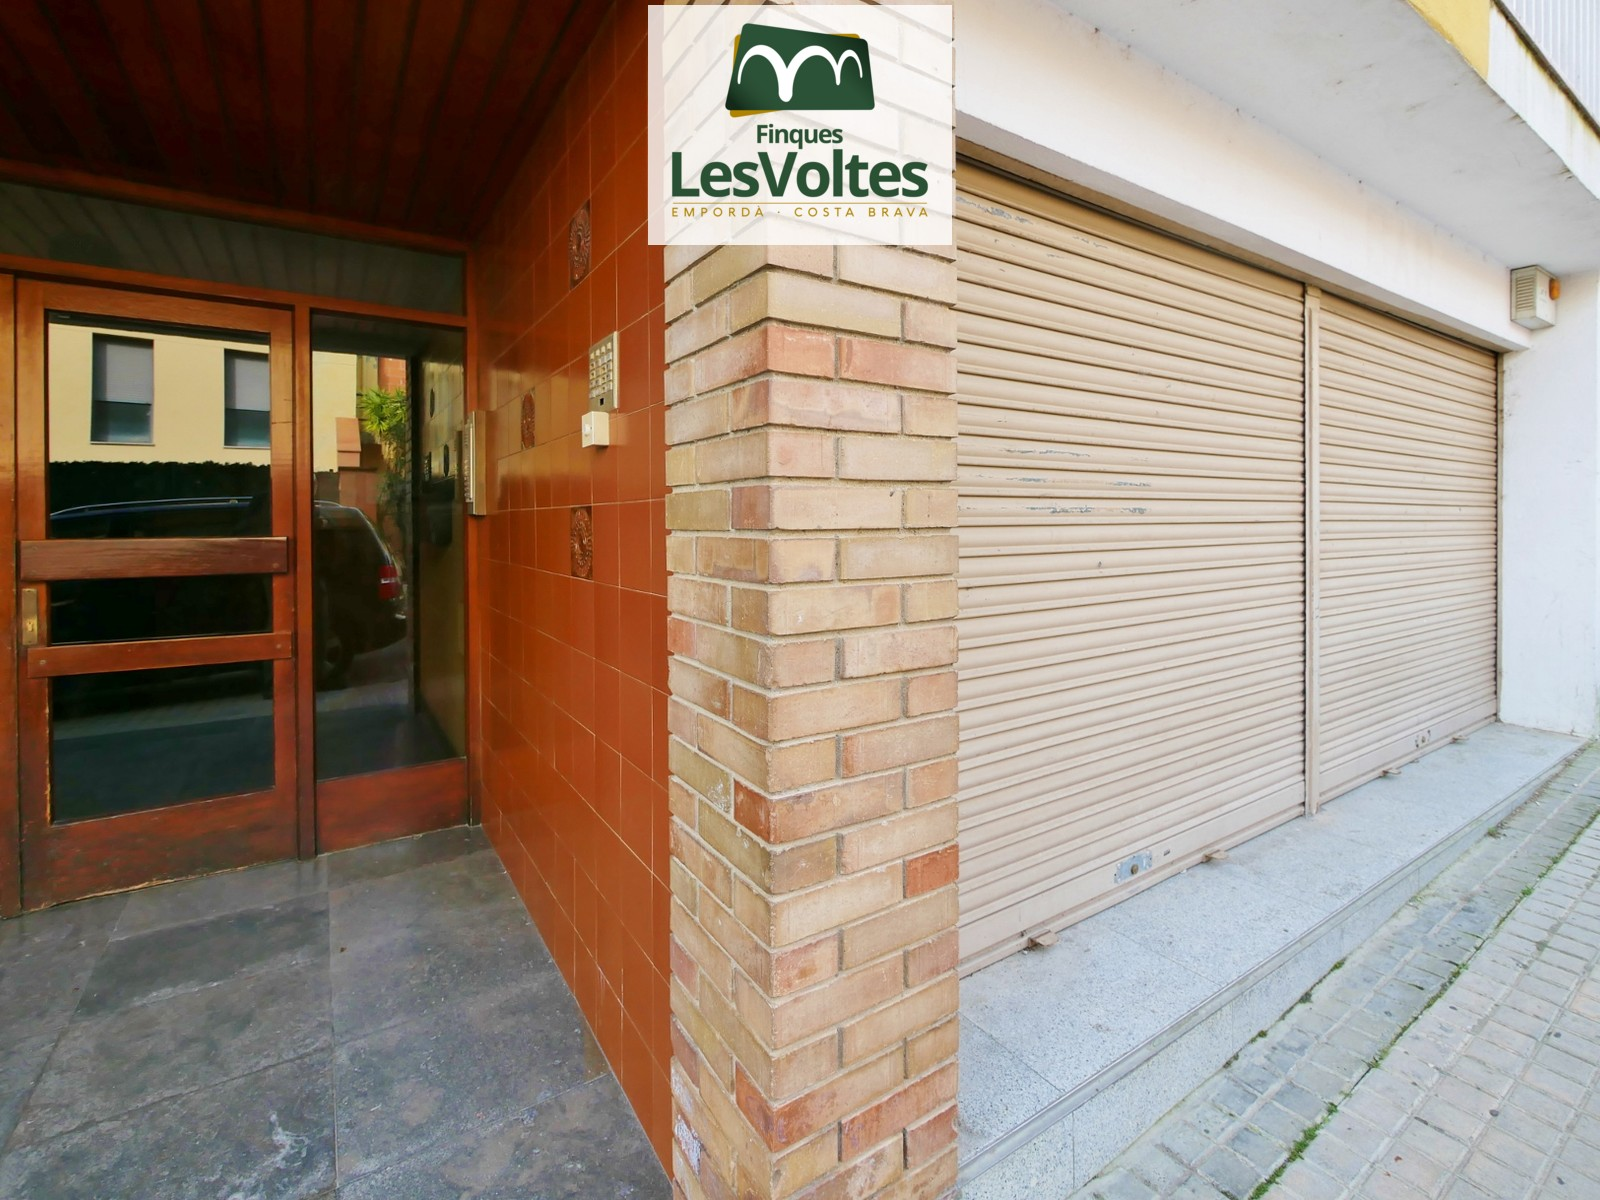 Commercial premises on the ground floor for sale located residential area of Palafrugell.